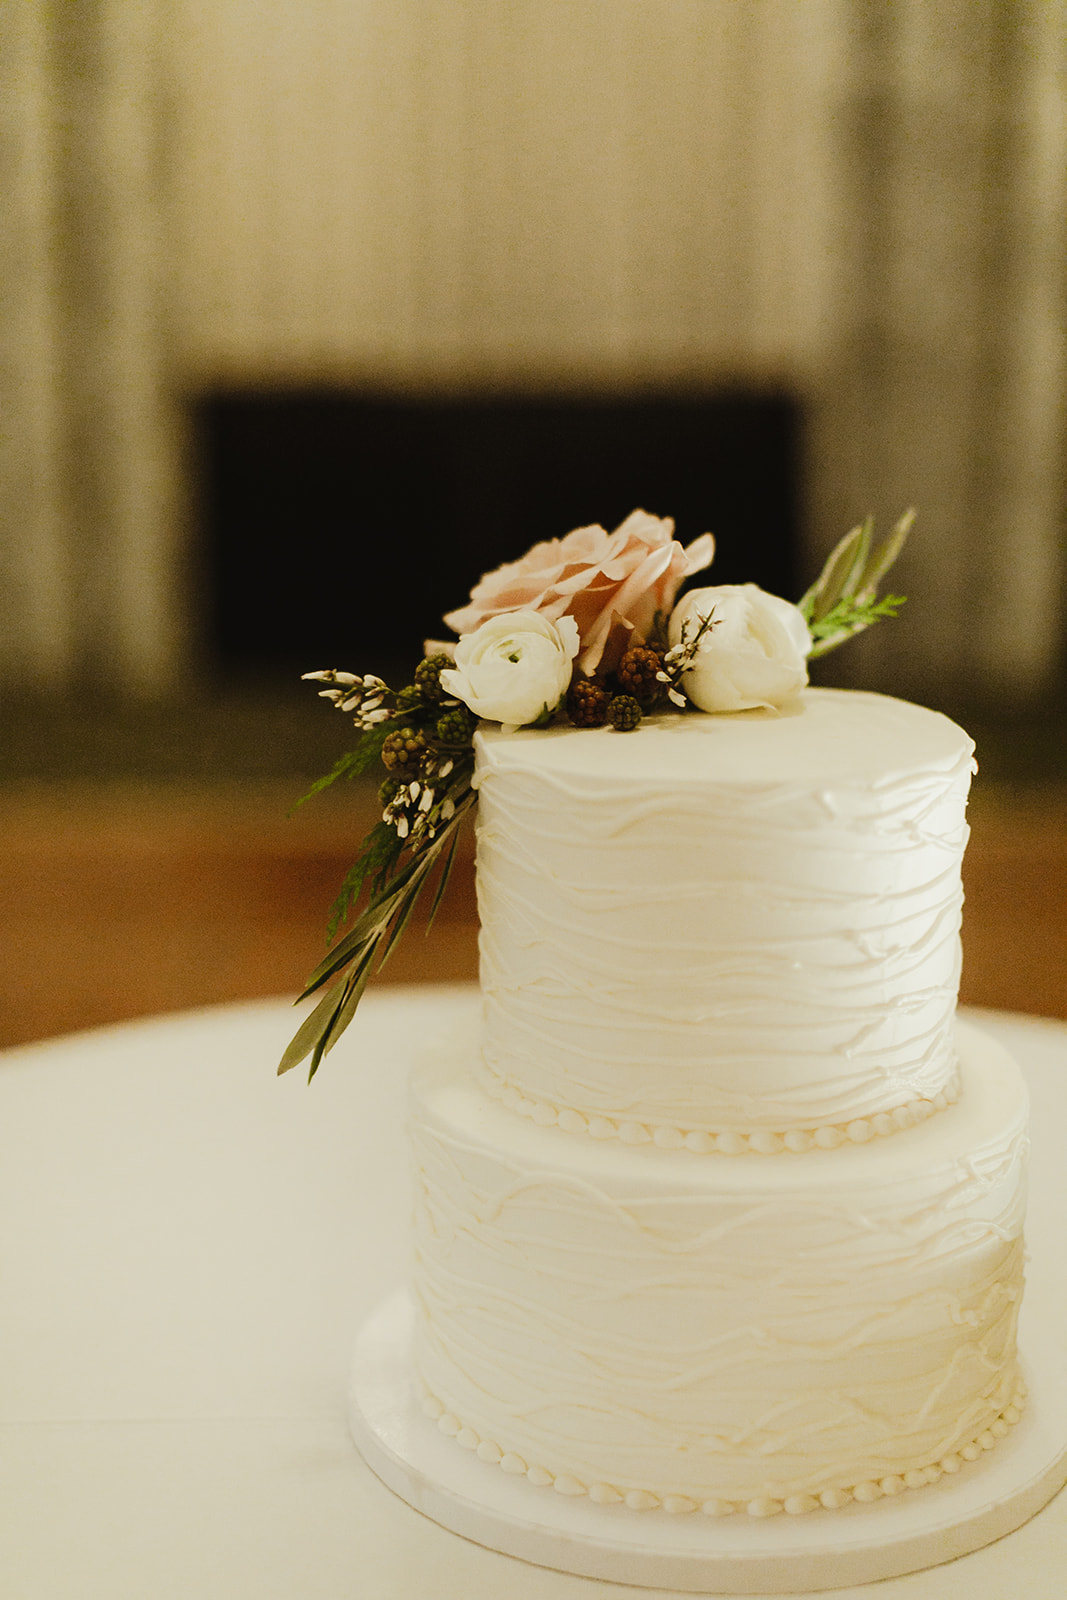 A white wedding cake with flowers on it